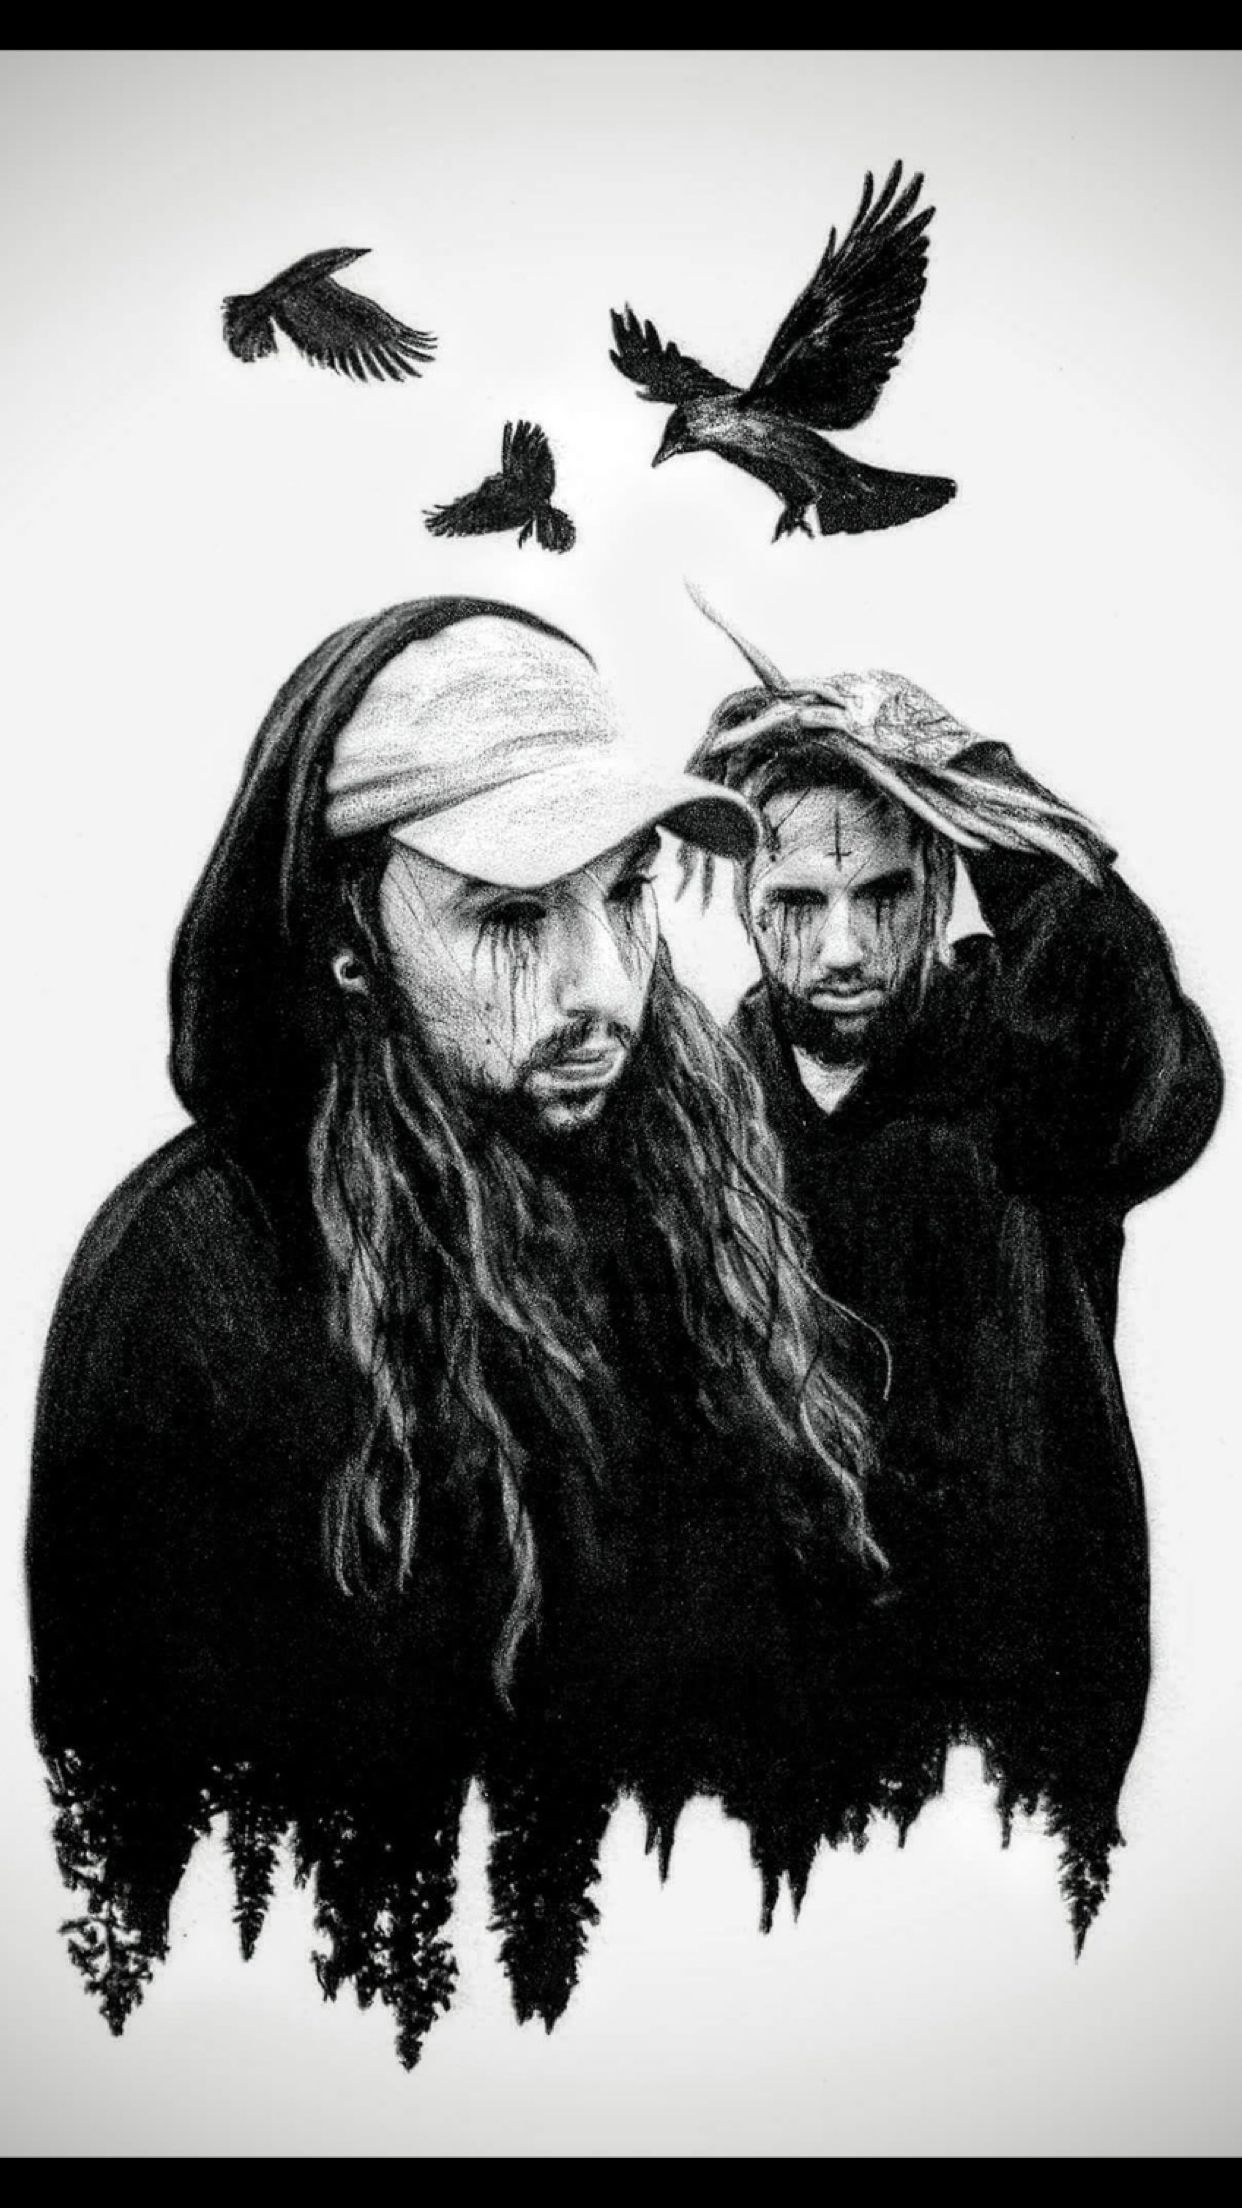 Suicideboys Wallpapers Top Free Suicideboys Backgrounds